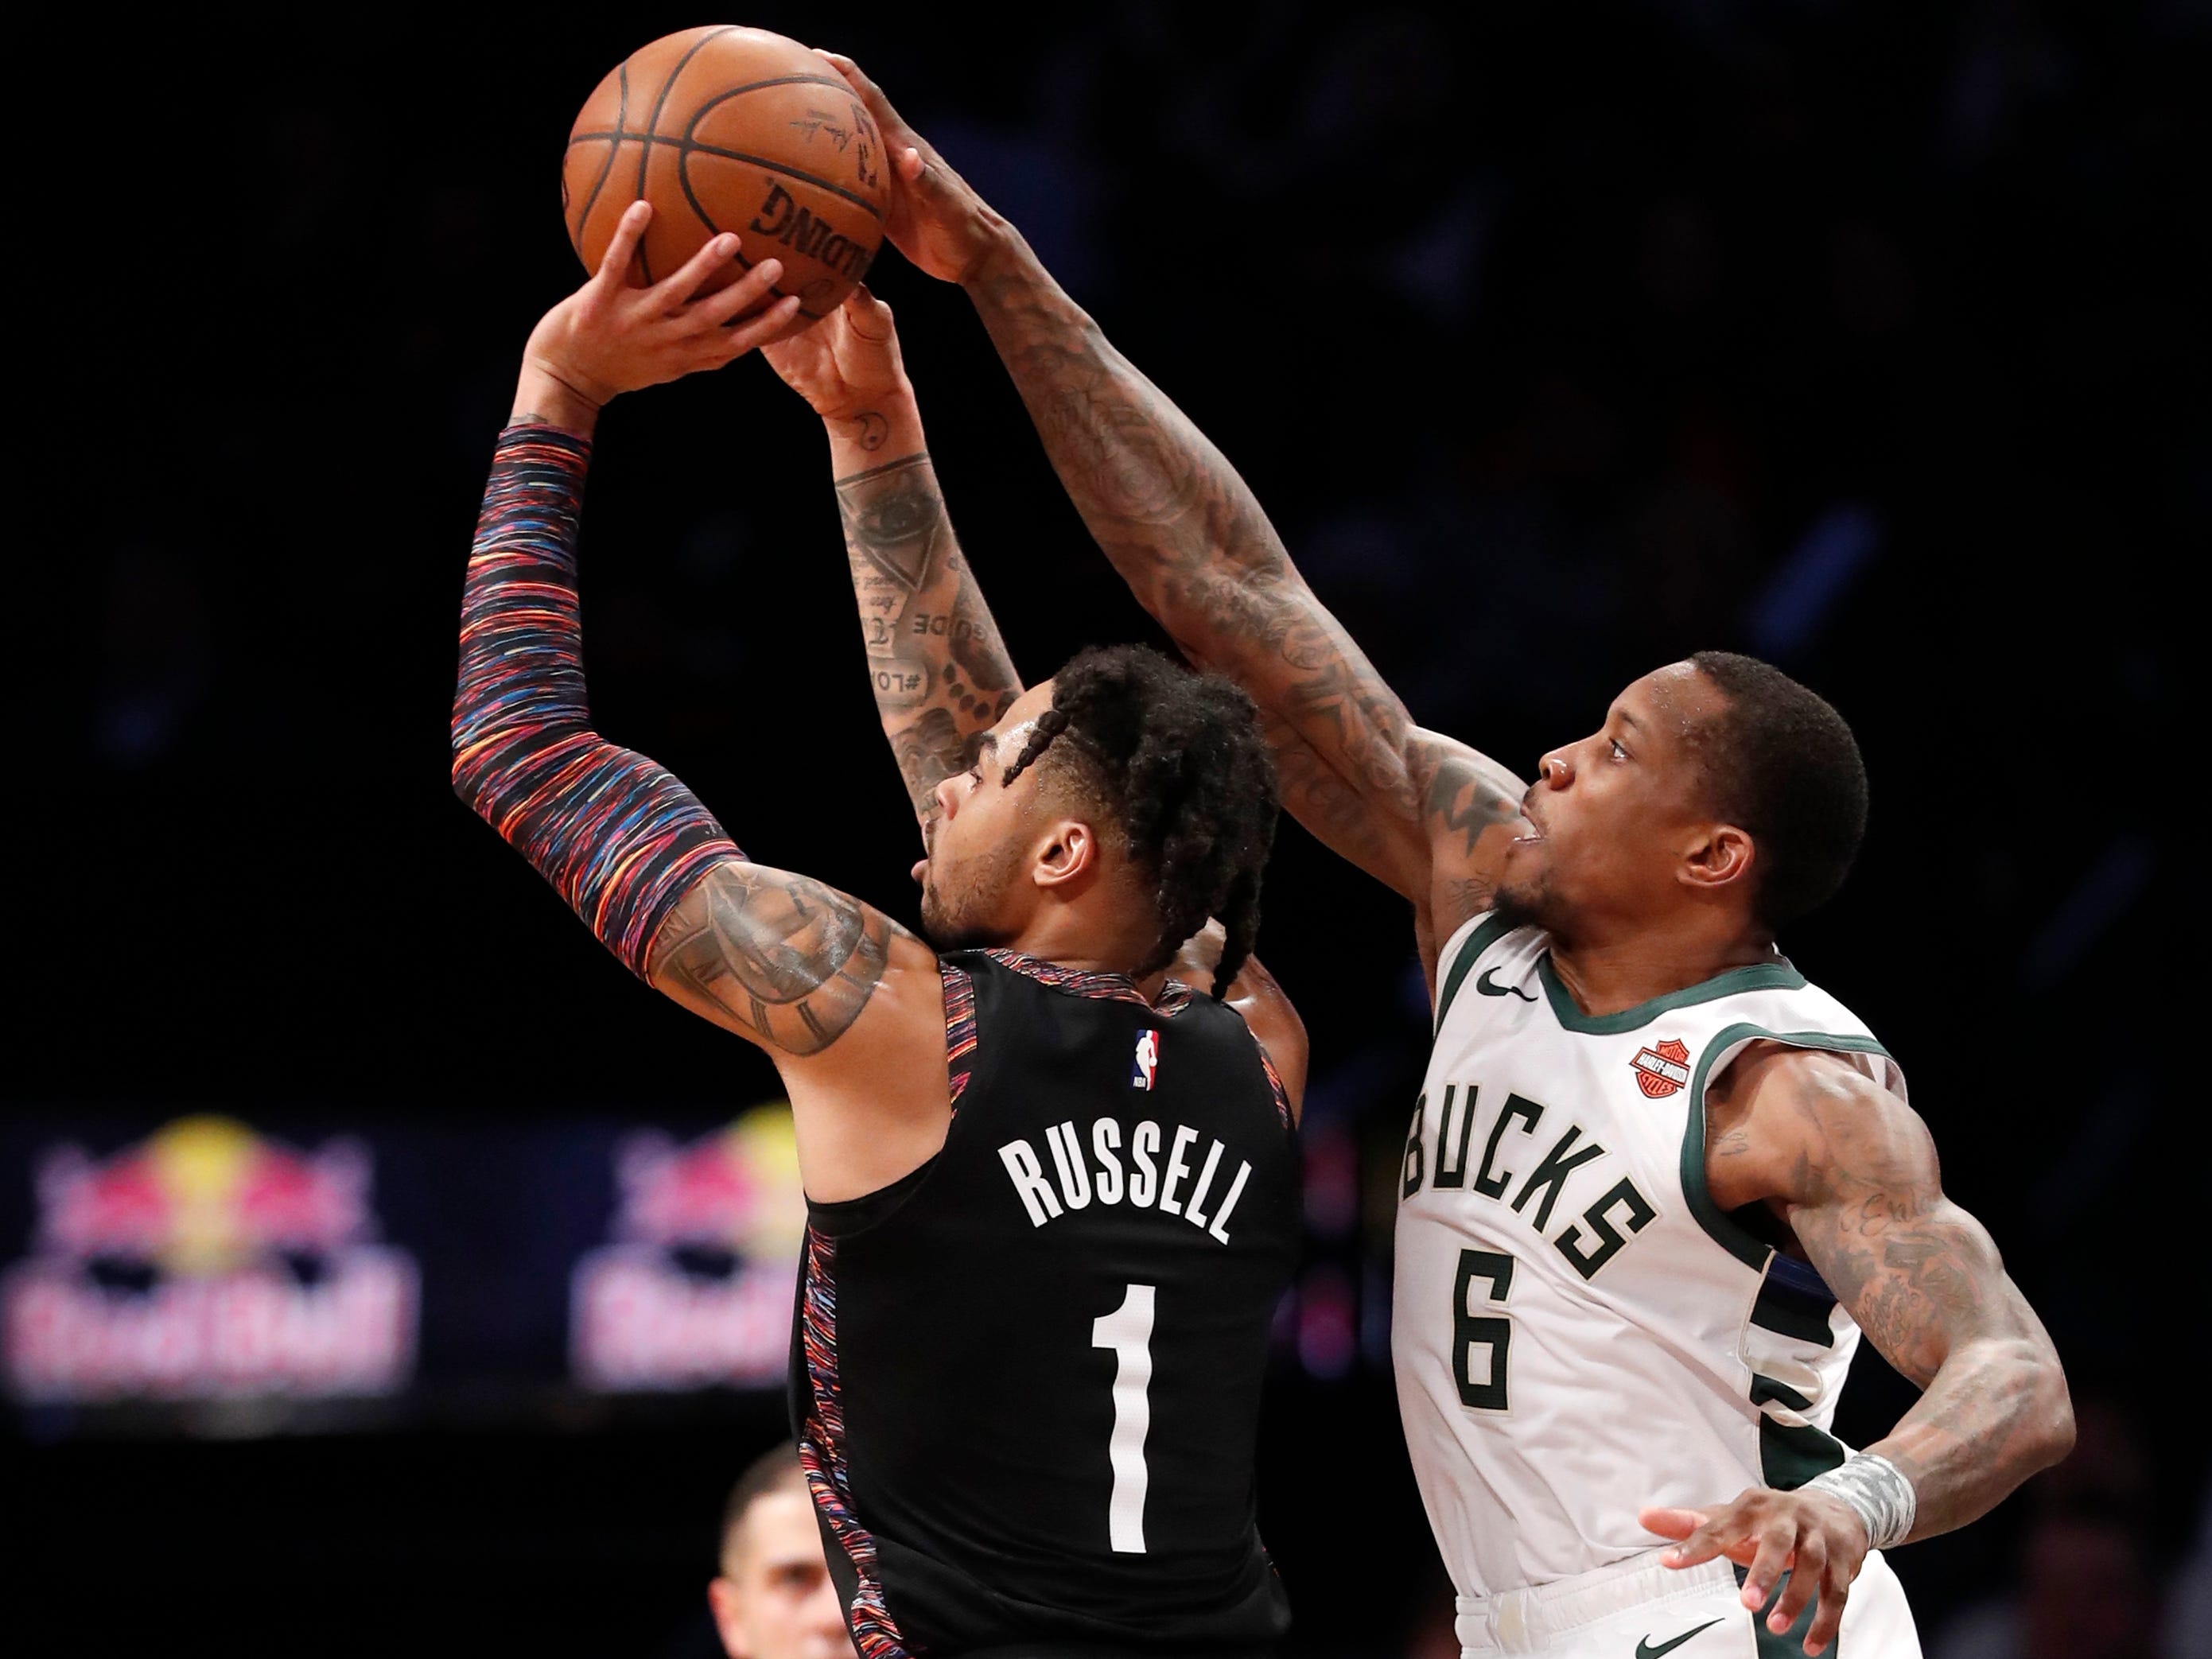 Bucks guard Eric Bledsoe blocks the three-point attempt of the Nets' D'Angelo Russell from behind during the second half Monday night.